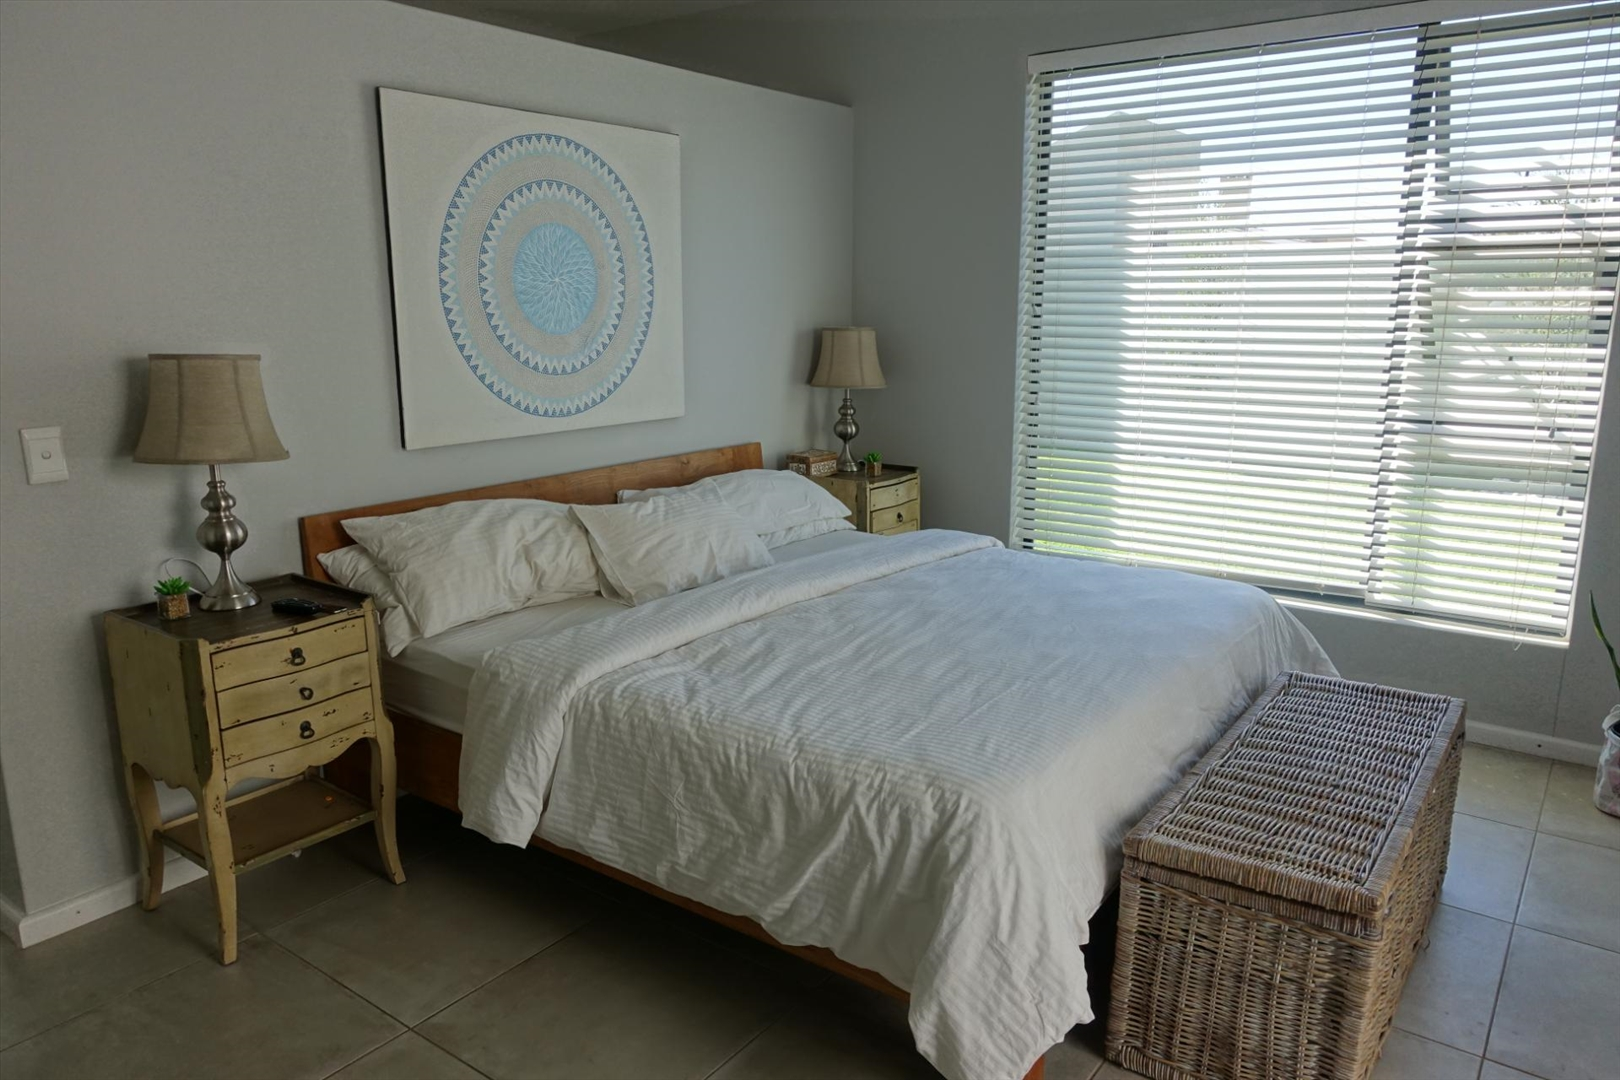 Main bedroom with sliding doors opening onto the patio